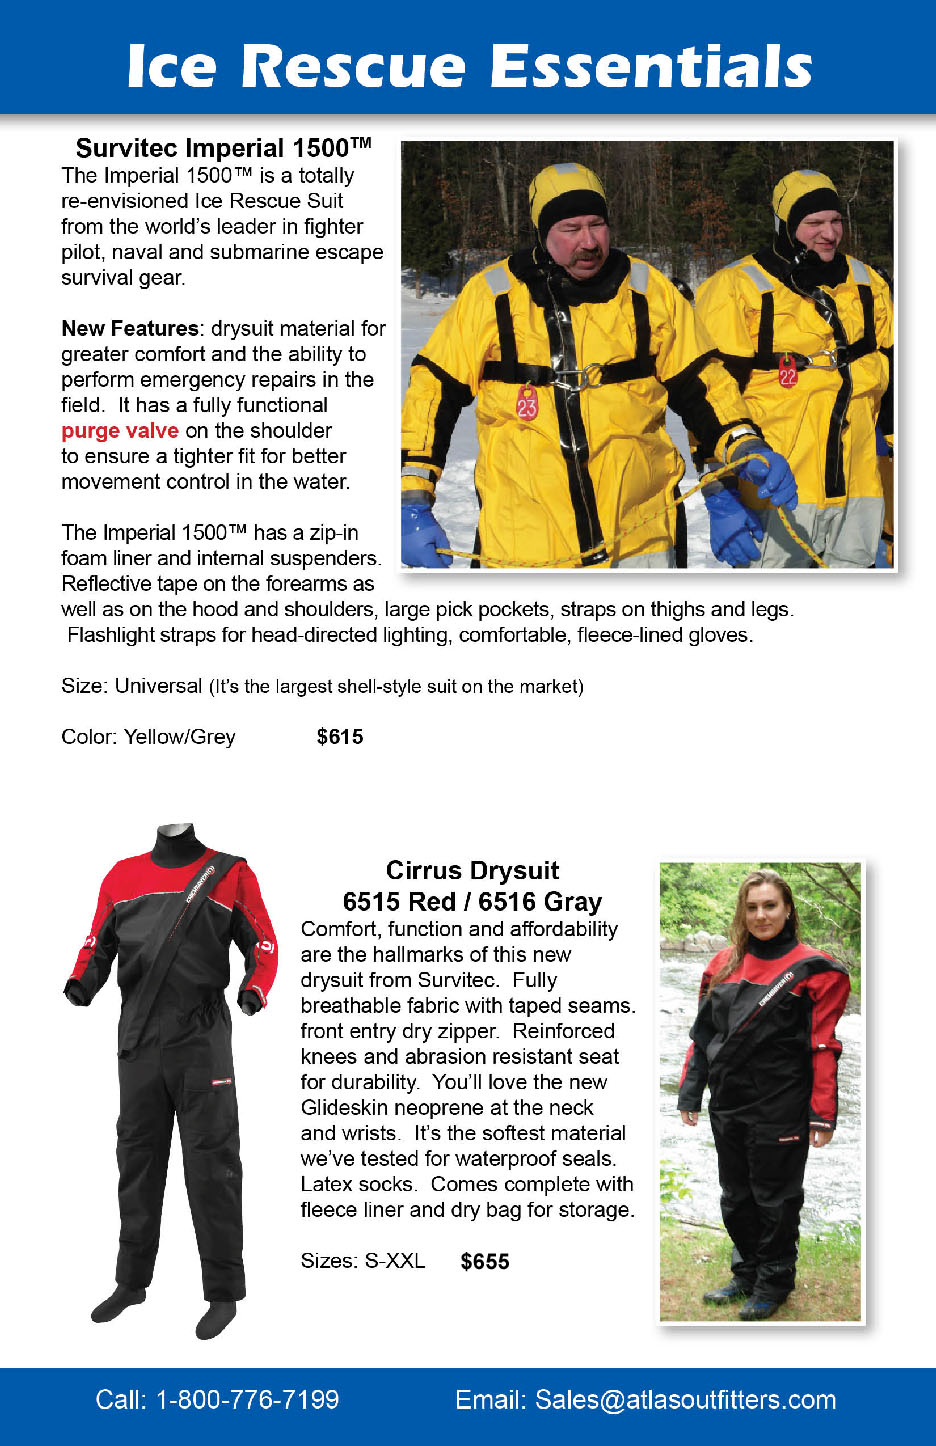 Survitec Imperial 1500 ice rescue suits